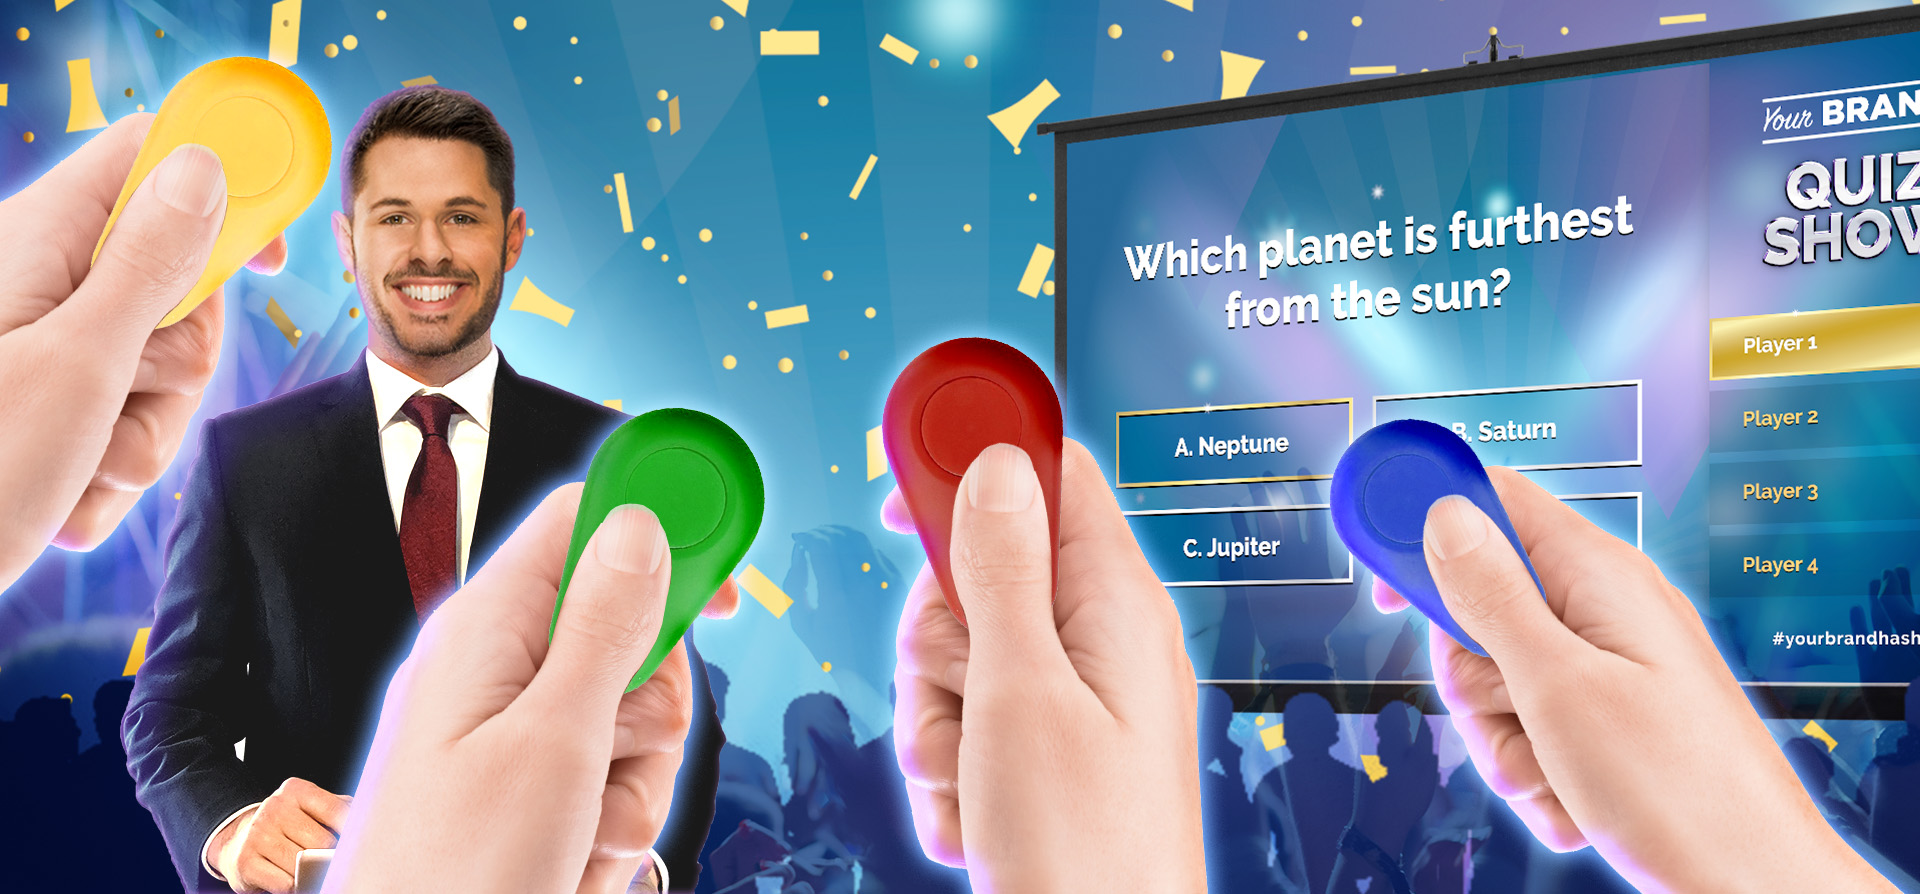 customisable_activation_game_developer_sydney_quiz_show_bluetooth_buzzer_ios_screen_multiplayer_24